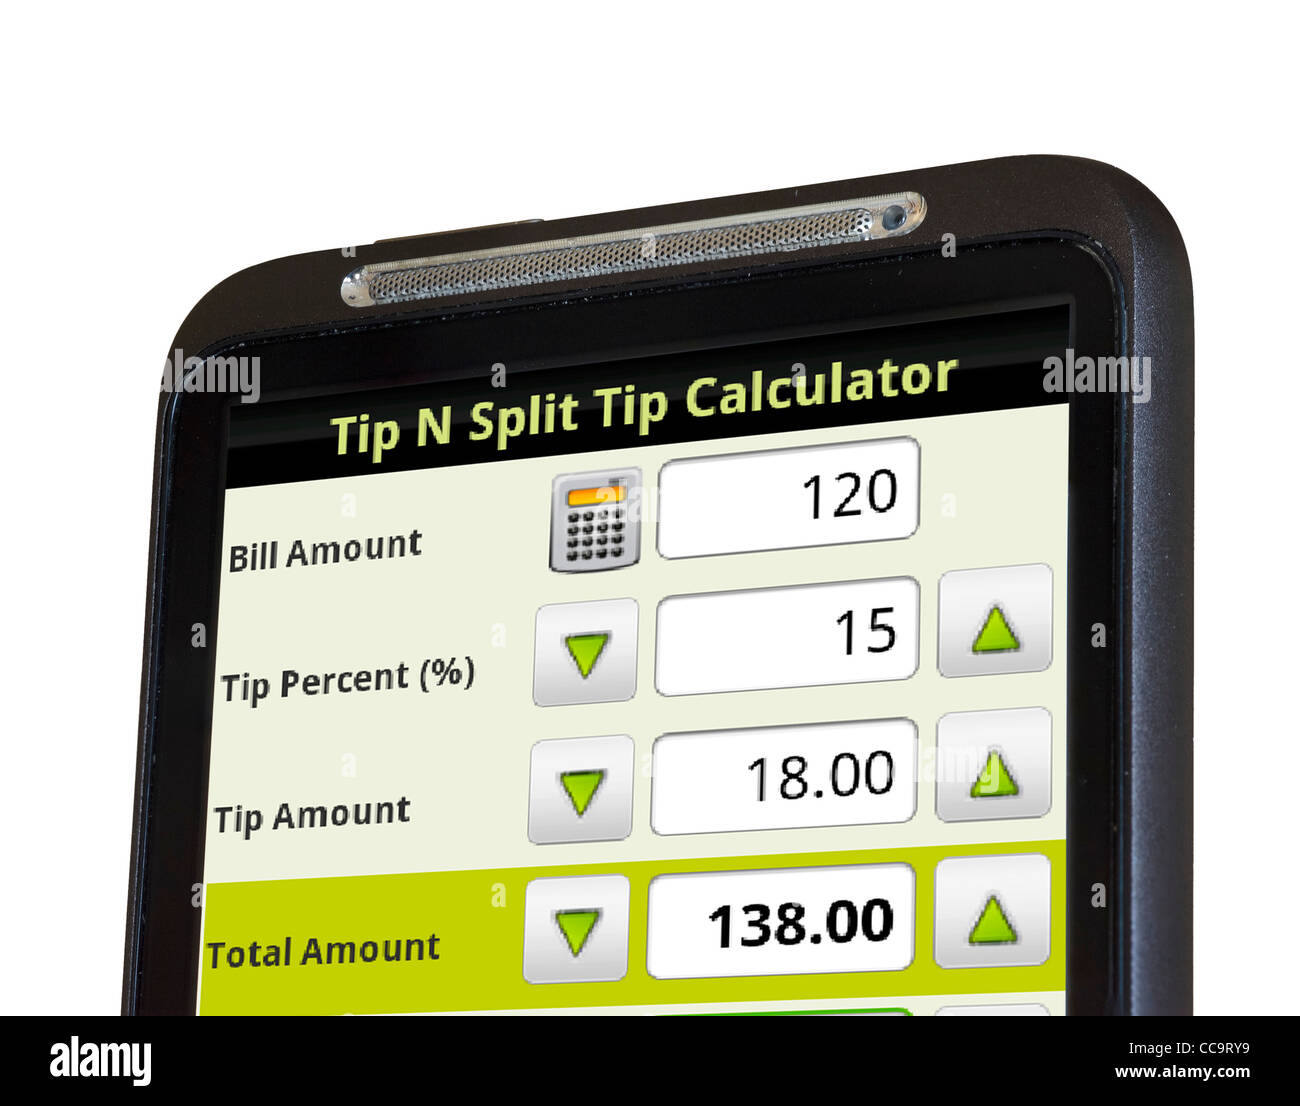 using a tip calculator app on an android htc smartphone stock photo